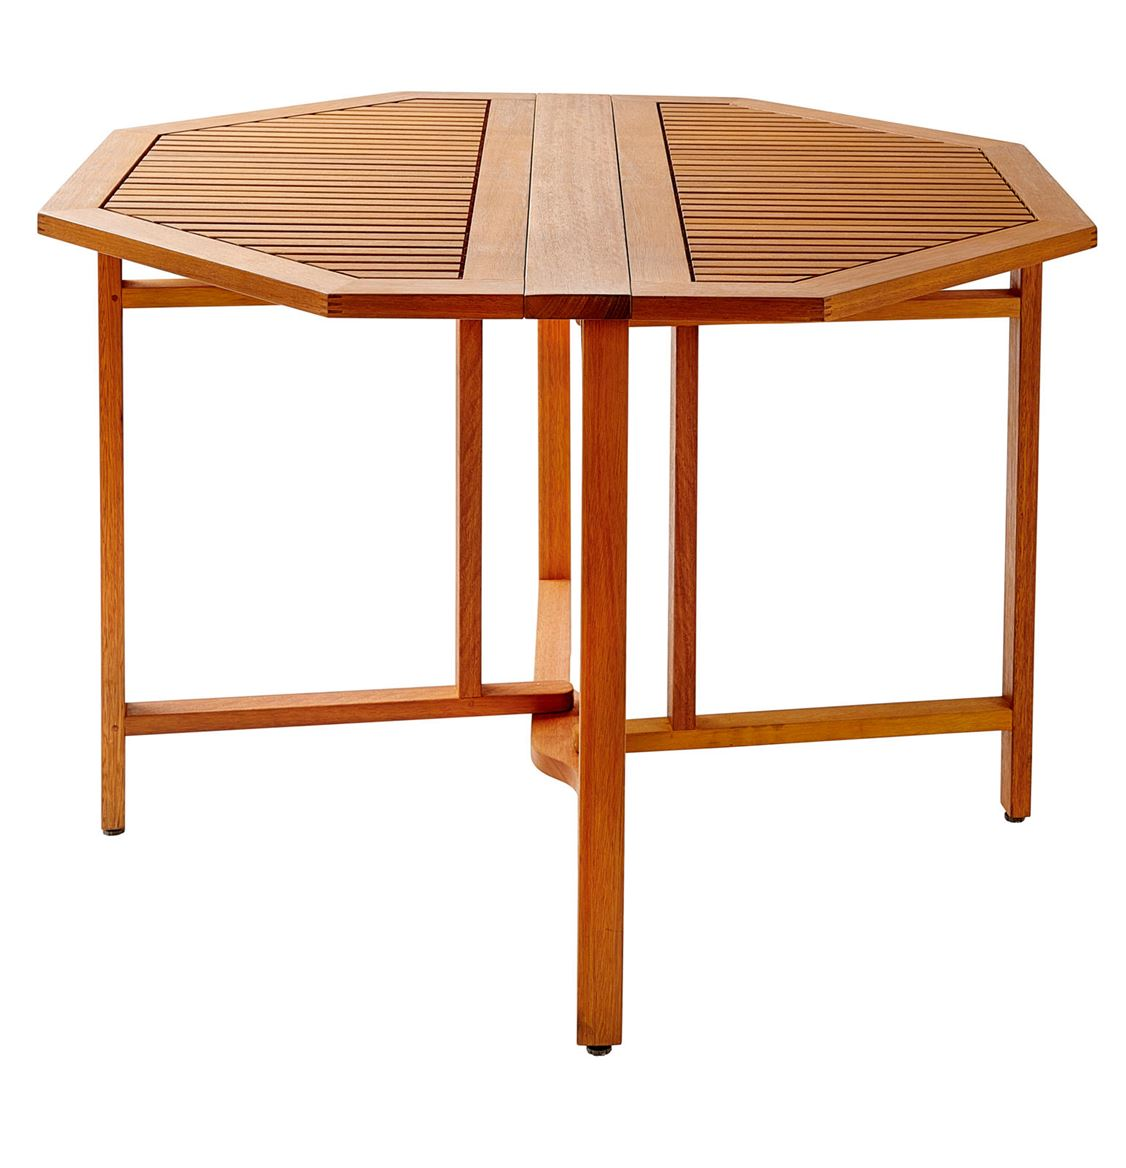 NEW OREGON Vouwtafel naturel H 74 cm; Ø 109 cm_new-oregon-vouwtafel-naturel-h-74-cm;-ø-109-cm